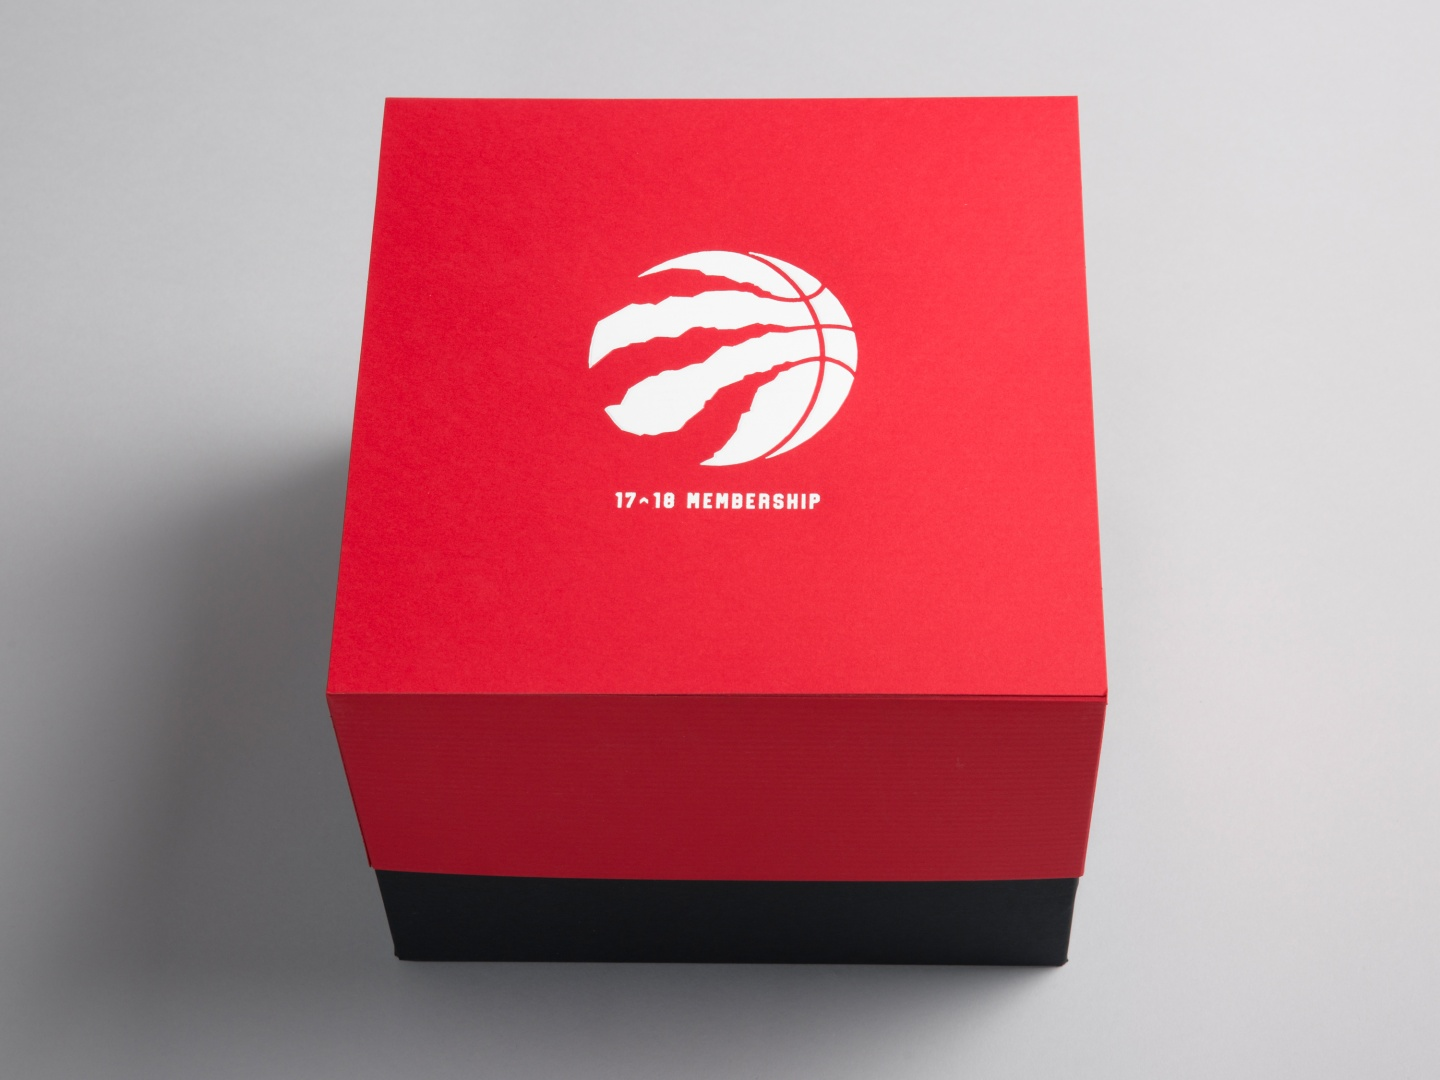 Toronto Raptors Season Ticket Package 2017-18  Thumbnail